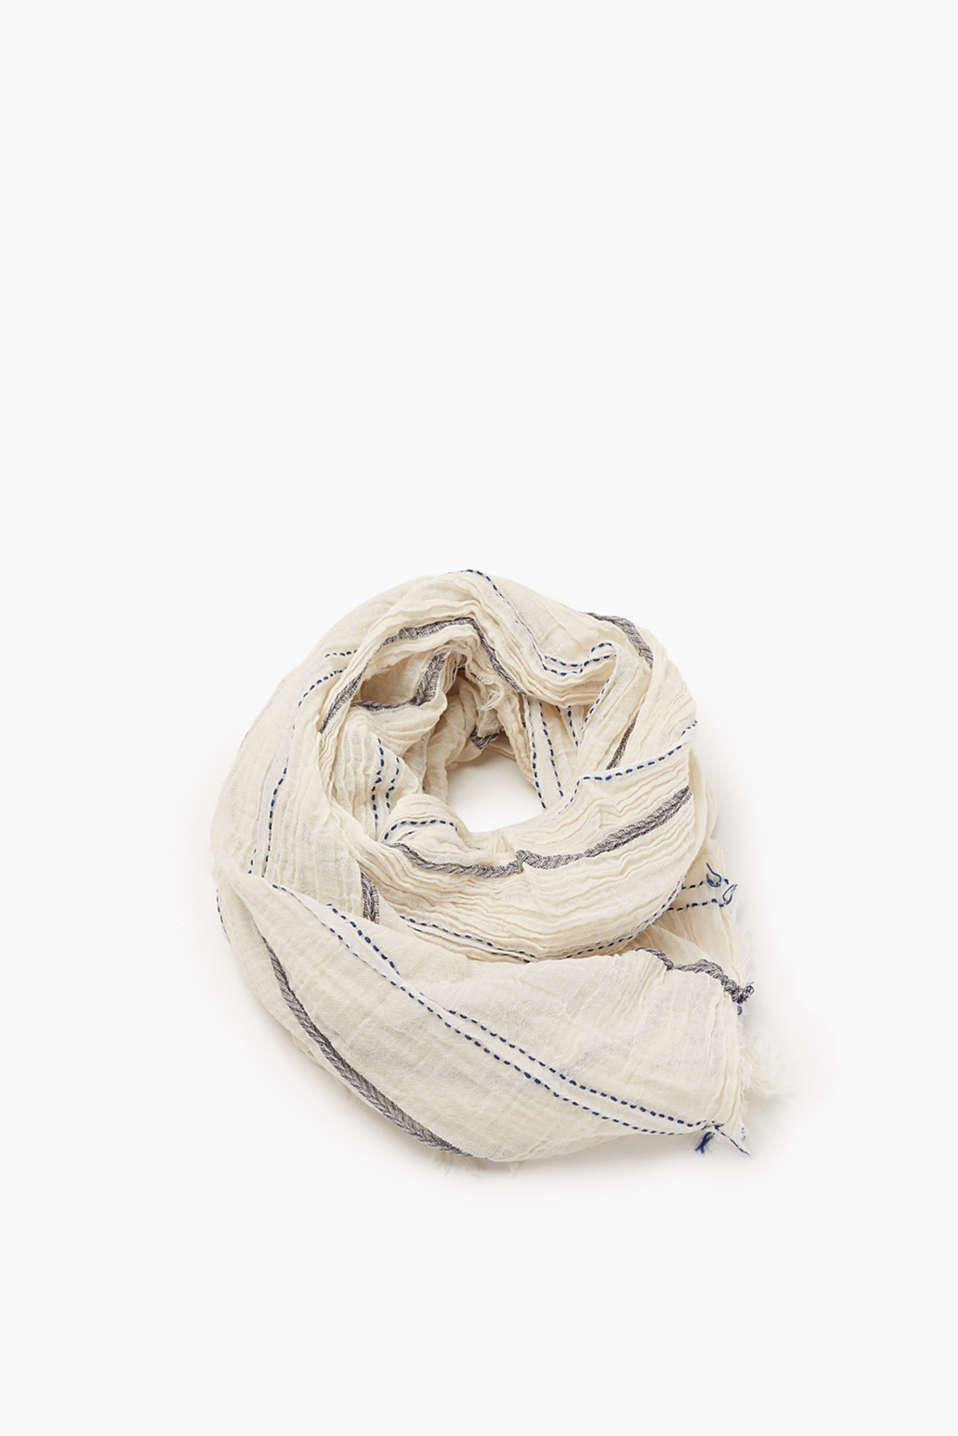 Scarf in a nautical striped look, made of soft blended cotton